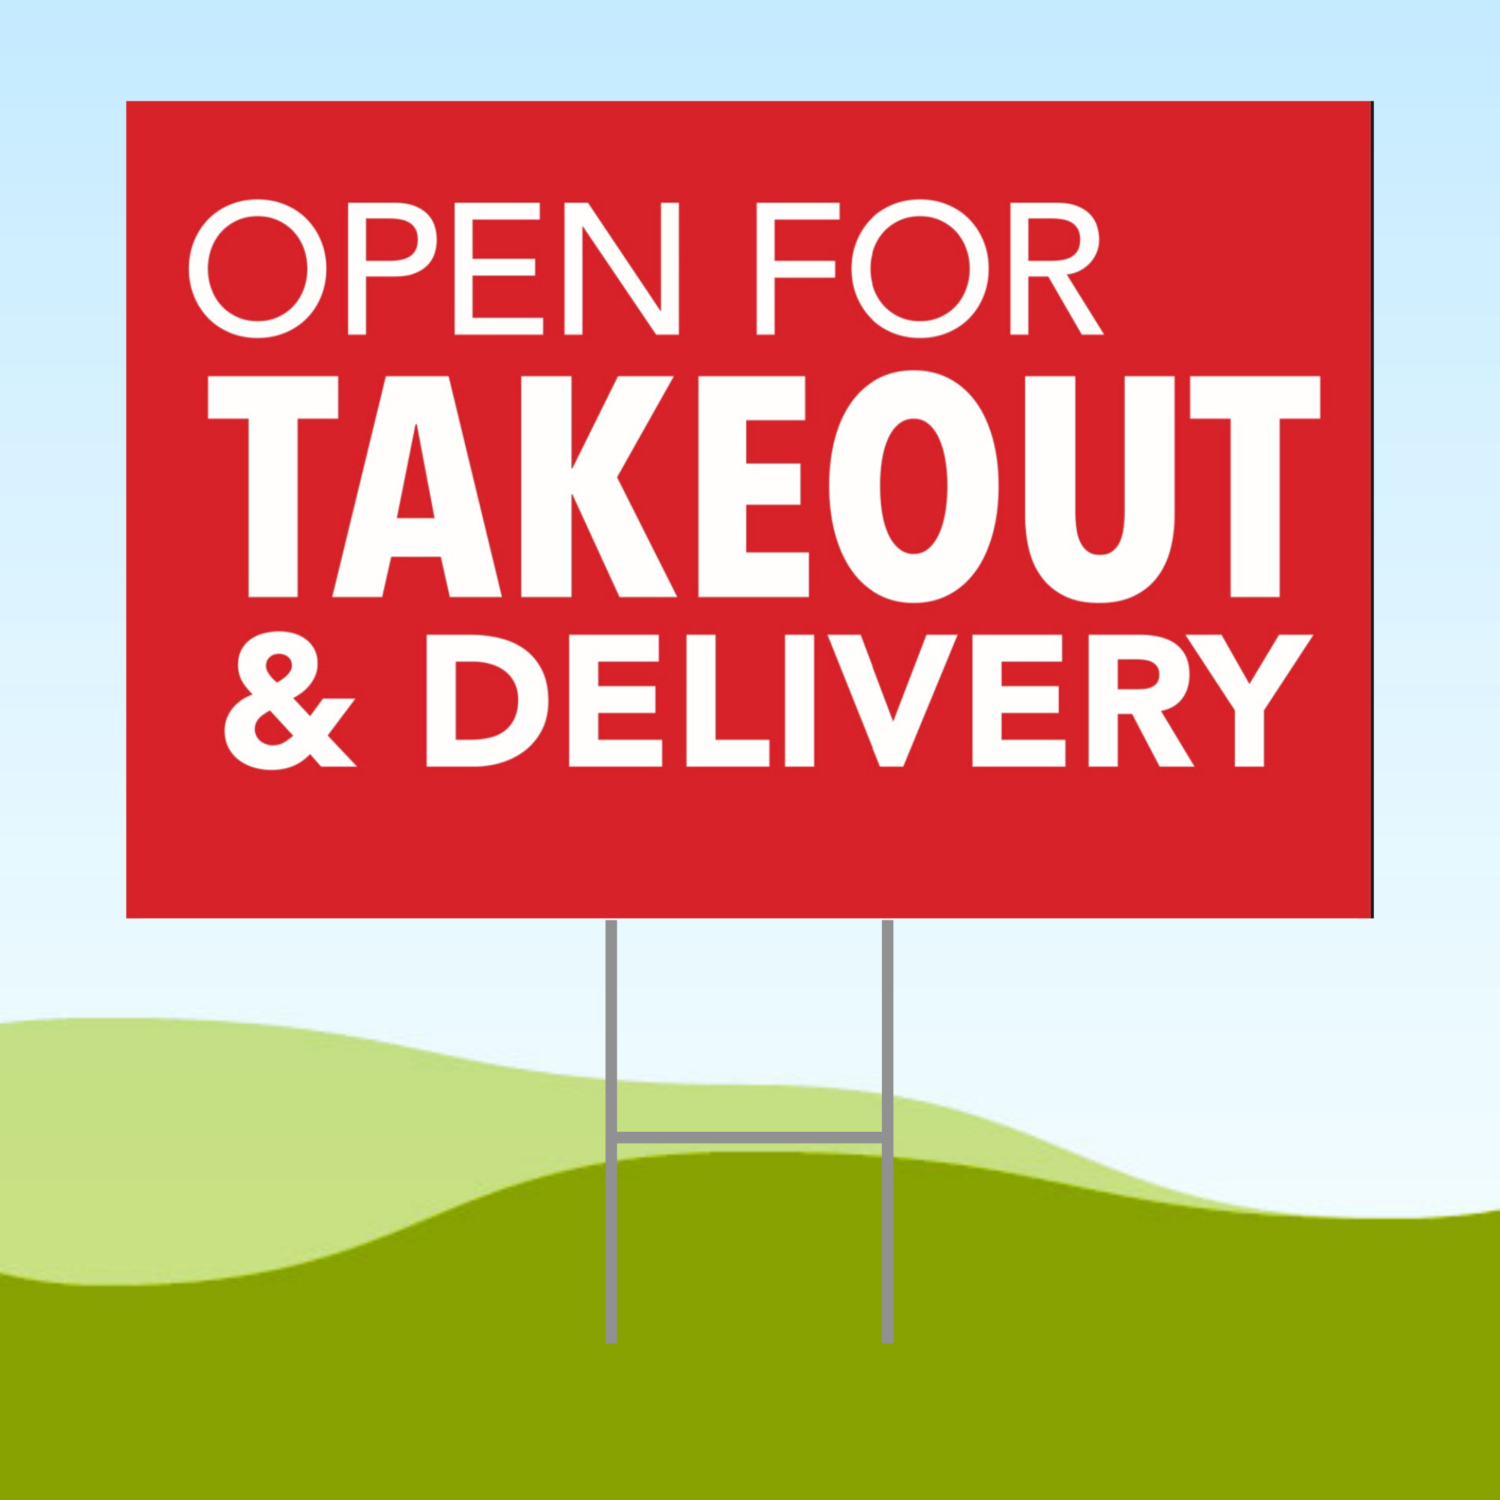 Open For Takeout & Delivery 18x24 Yard Sign WITH STAKE Corrugated Plastic Bandit